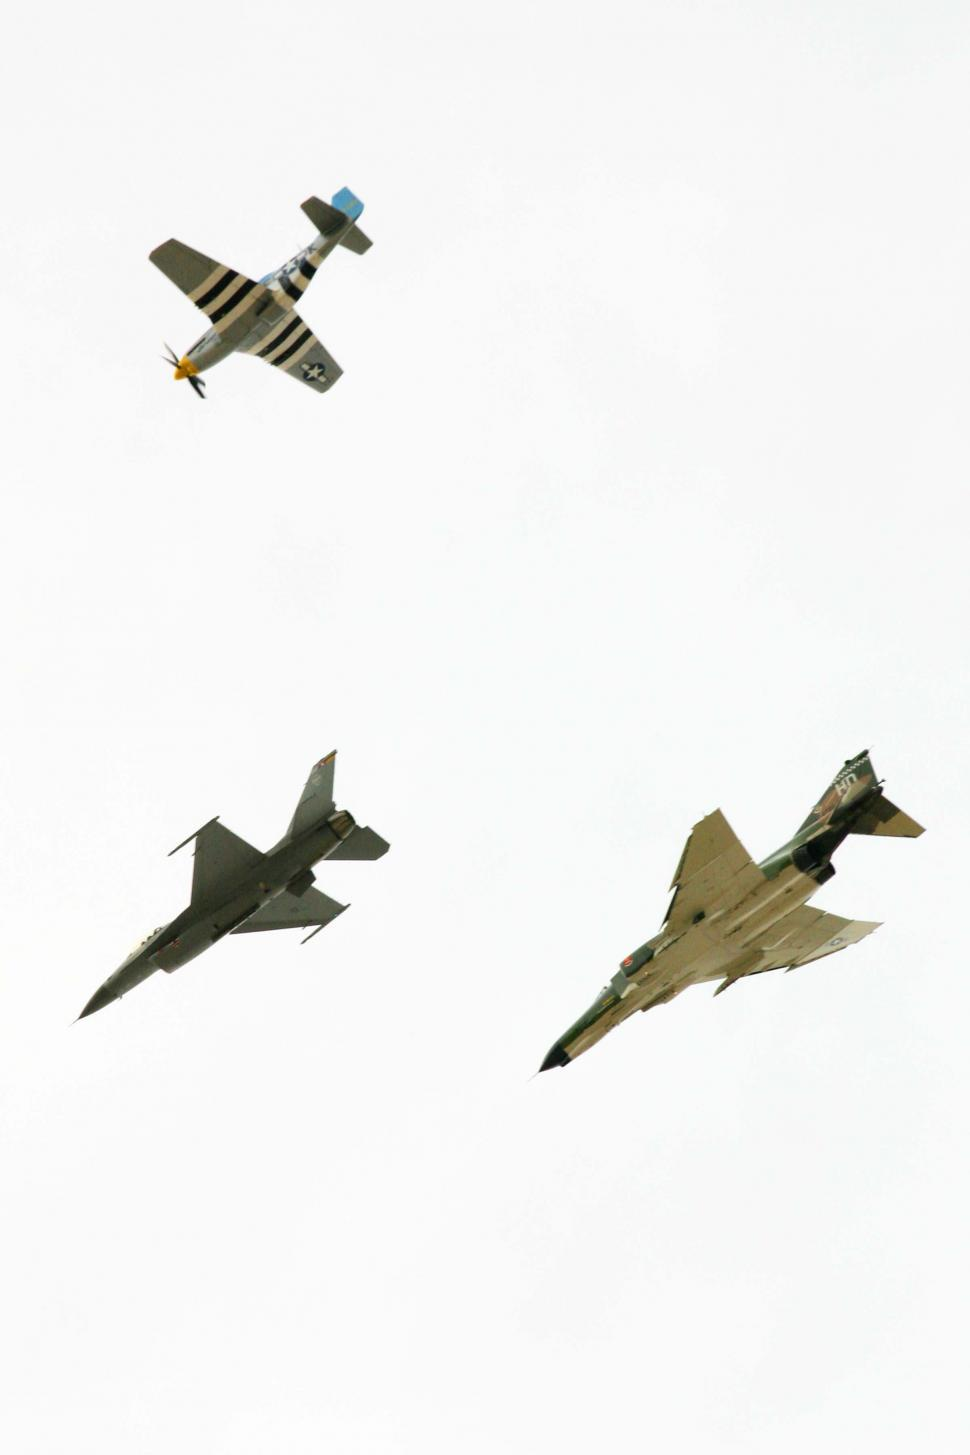 Download Free Stock HD Photo of Formation of Military Planes at Airshow Online